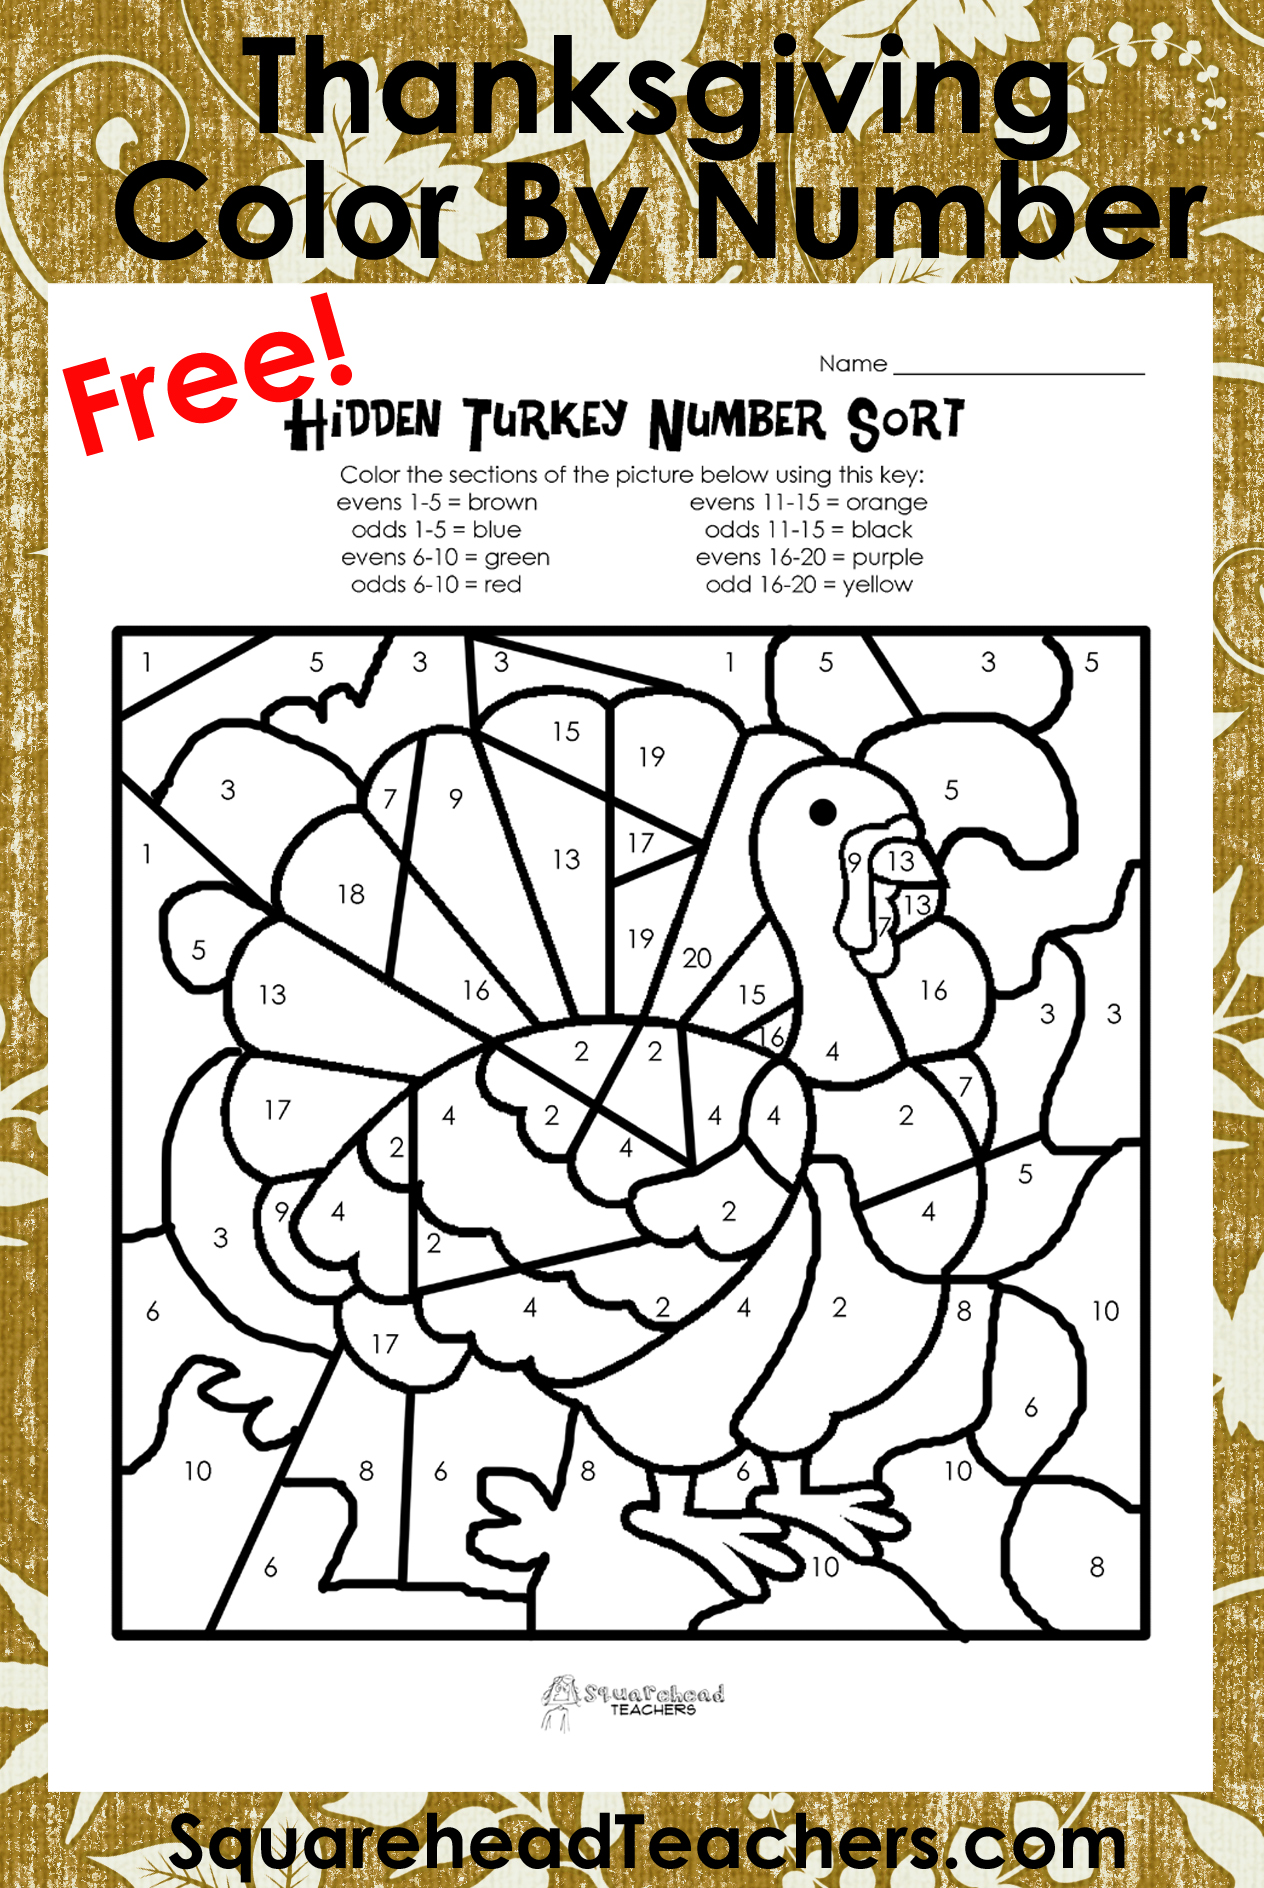 It's just a picture of Revered Printable Thanksgiving Worksheet